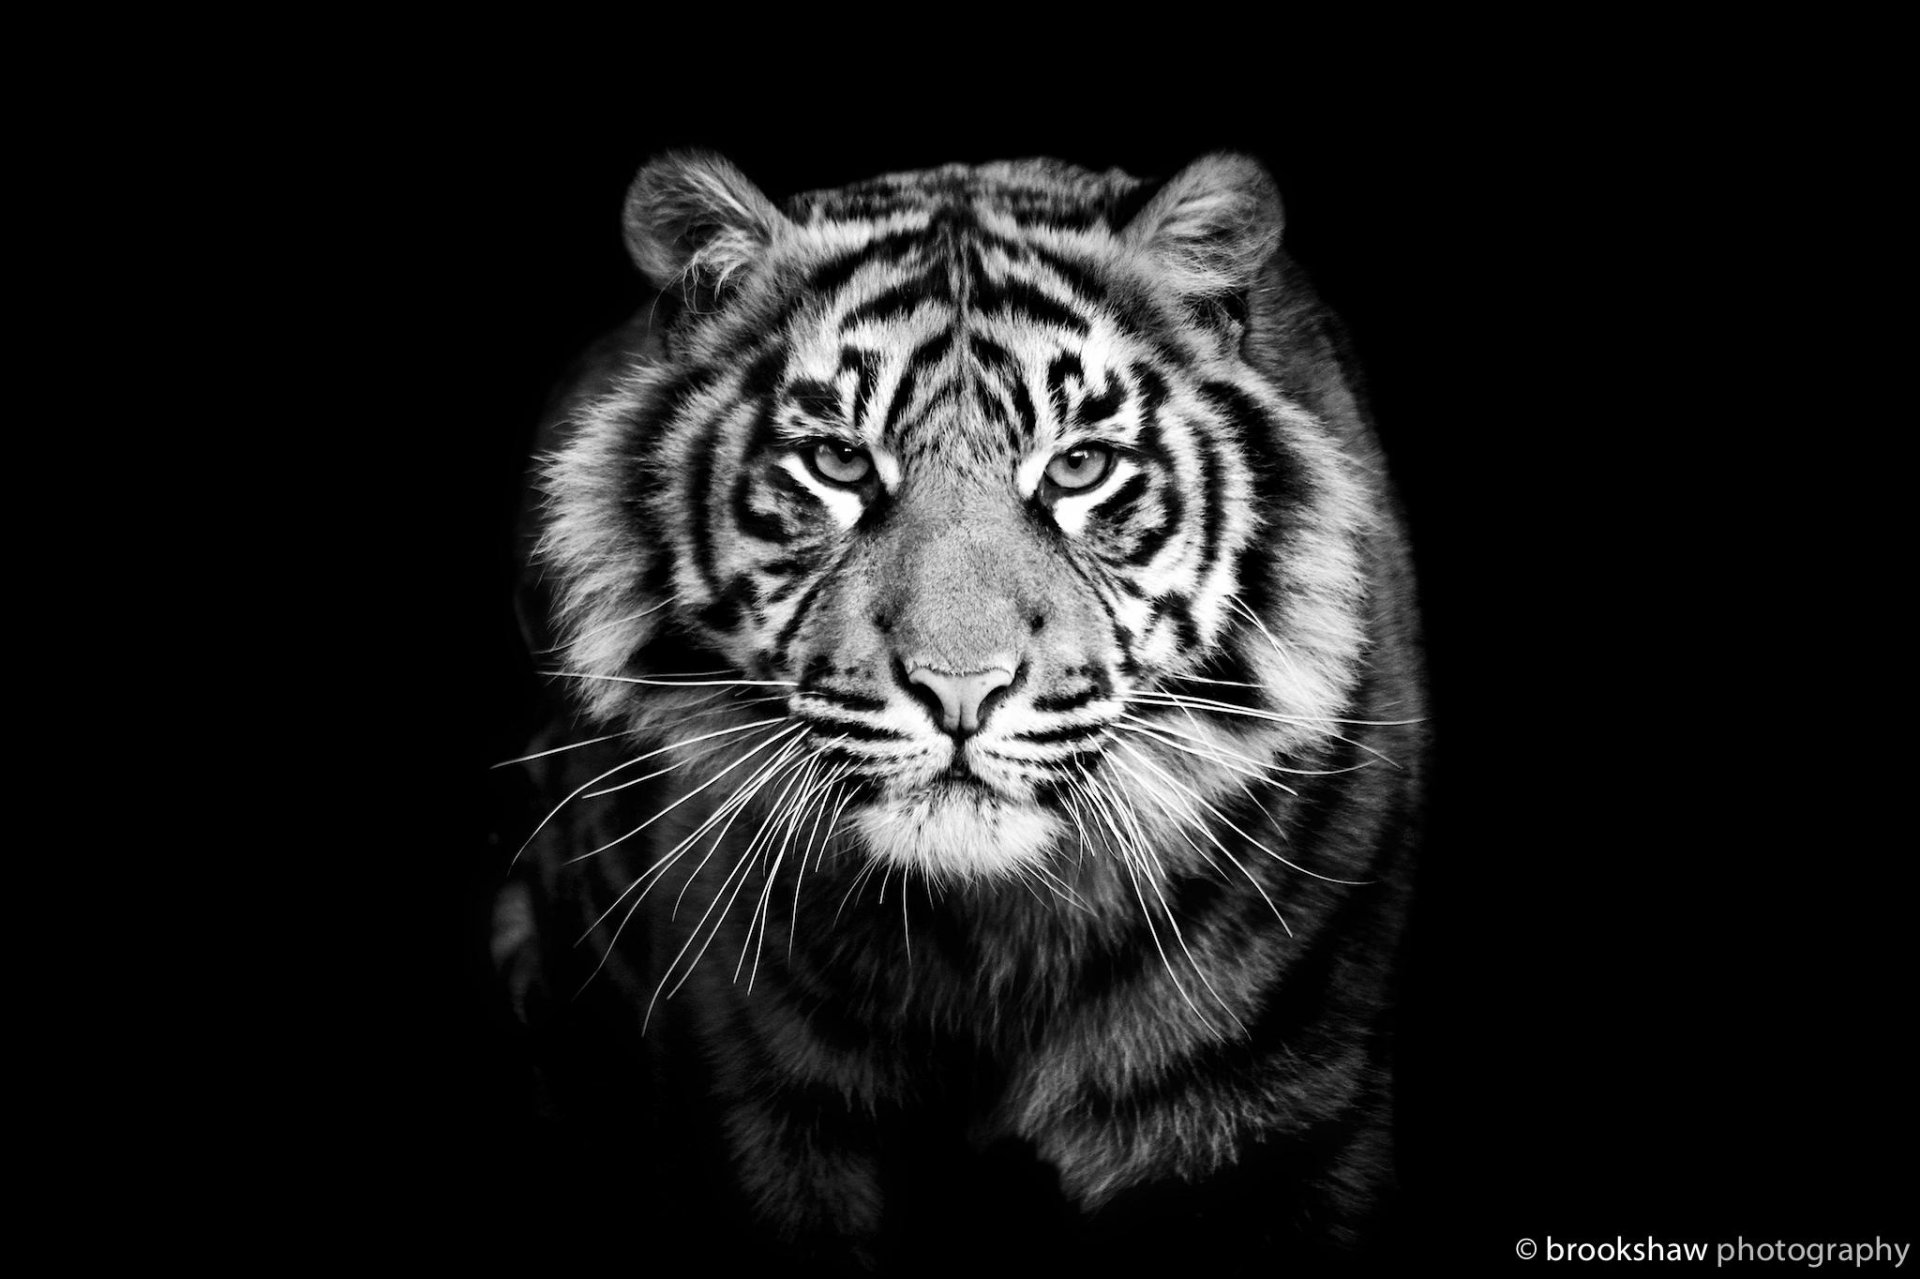 tiger predator close up black and white black background